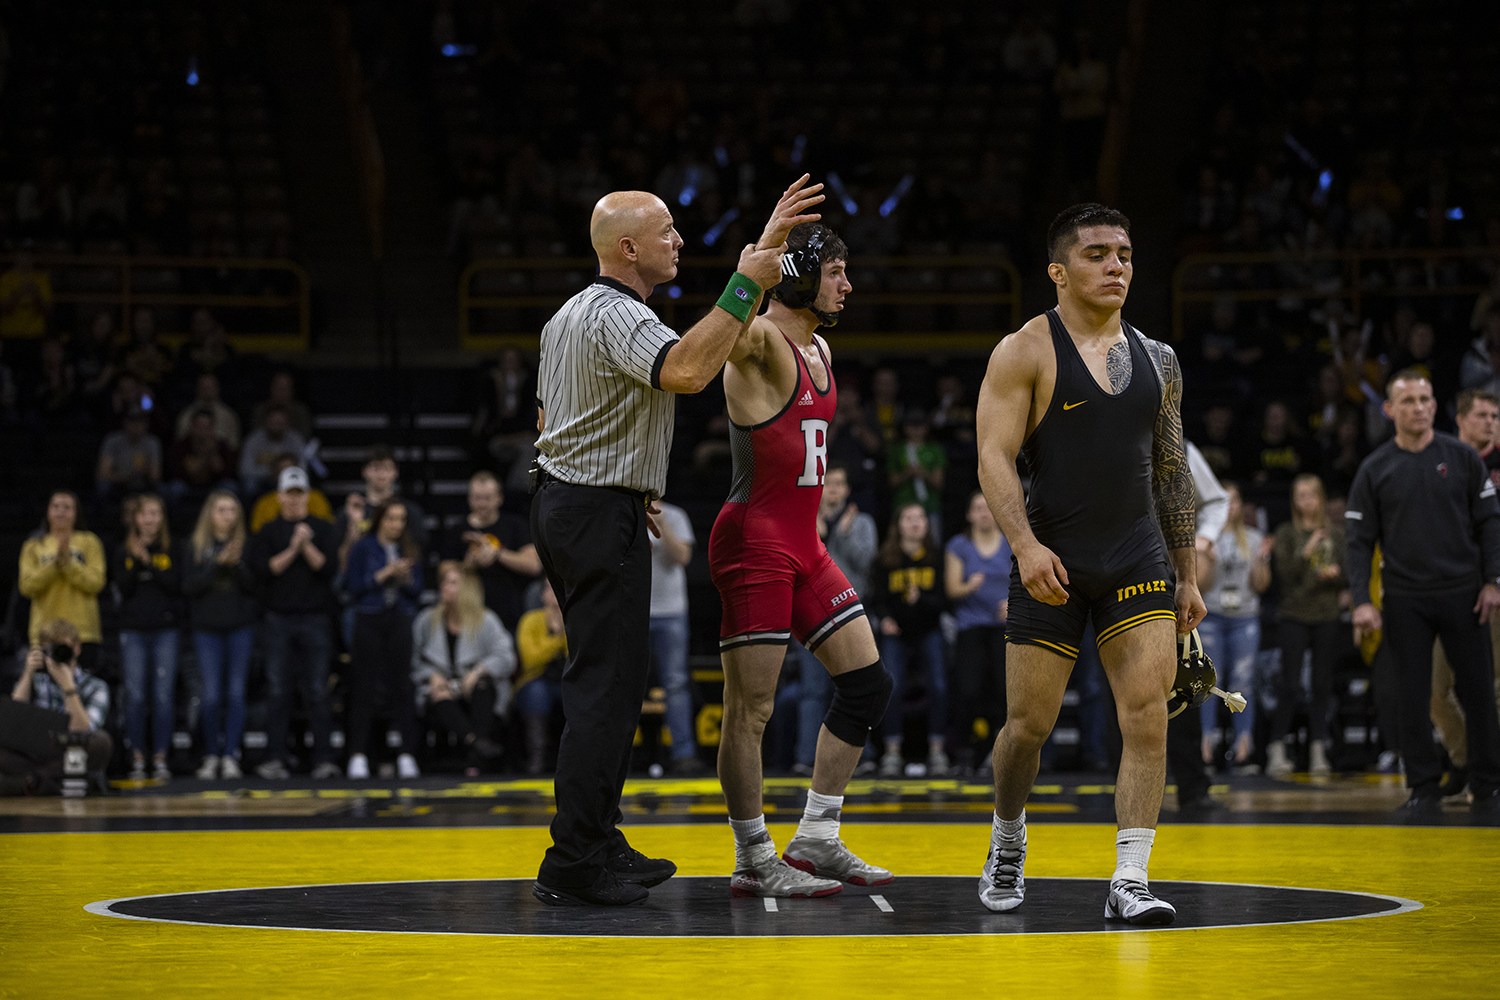 Rutgers%27+%232+Anthony+Ashnault+defeats+Iowa%27s+%2312+Pat+Lugo+during+the+Iowa%2FRutgers+wrestling+meet+at+Carver-Hawkeye+Arena+on+Friday%2C+January+18%2C+2019.+Ashnault+defeated+Lugo%2C+3-0.+The+Hawkeyes+defeated+the+Scarlet+Knights%2C+30-6.+